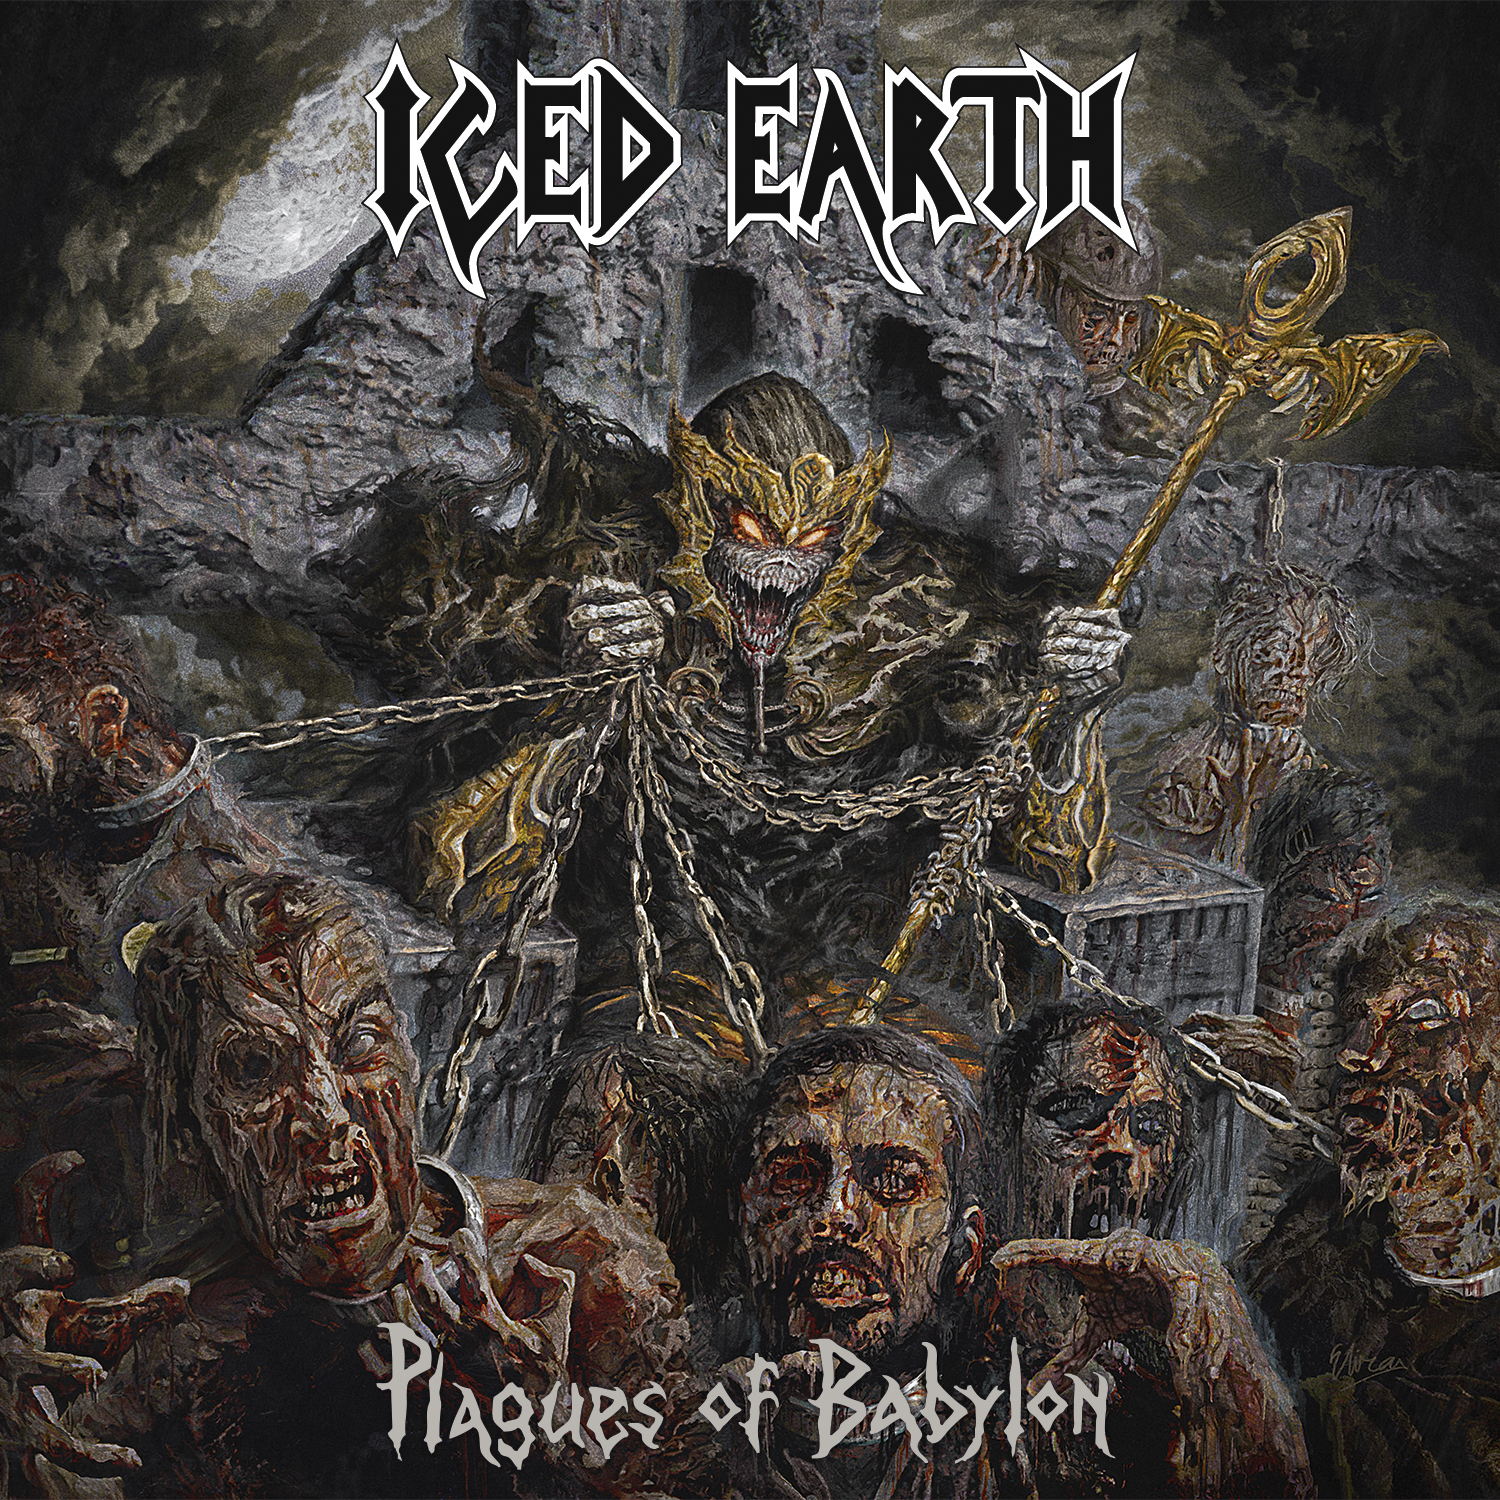 Iced Earth – Plagues of Babylon Review